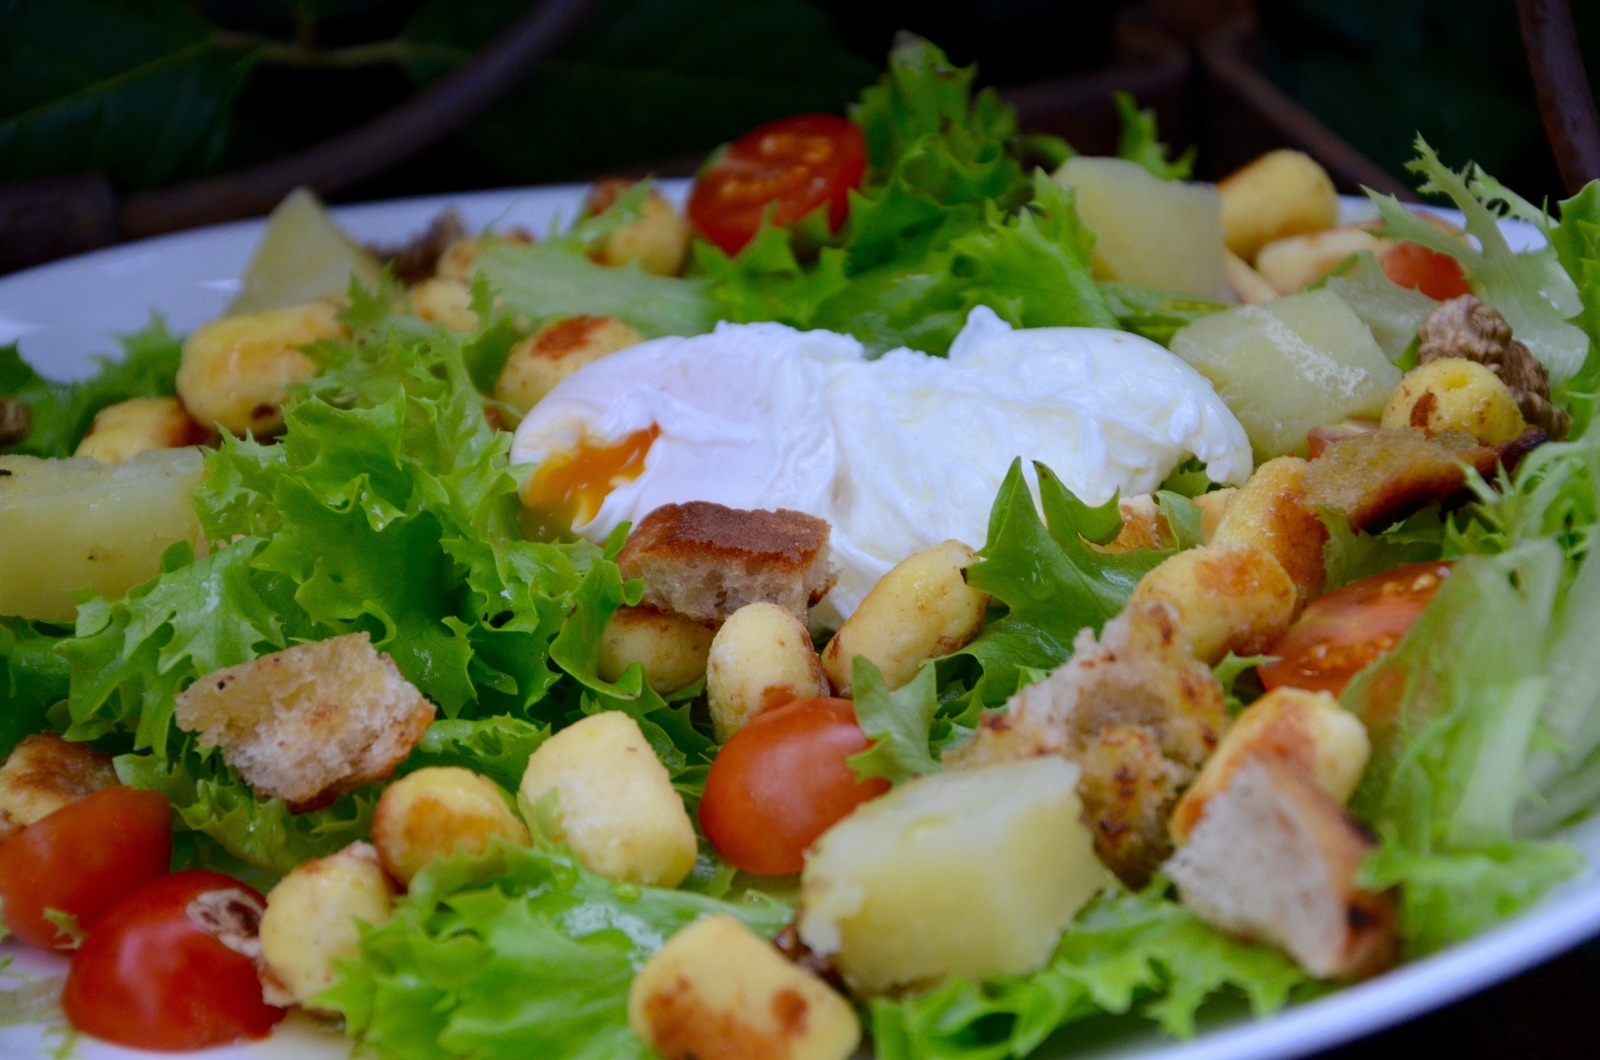 Amazing Salade Lyonnaise Pictures & Backgrounds